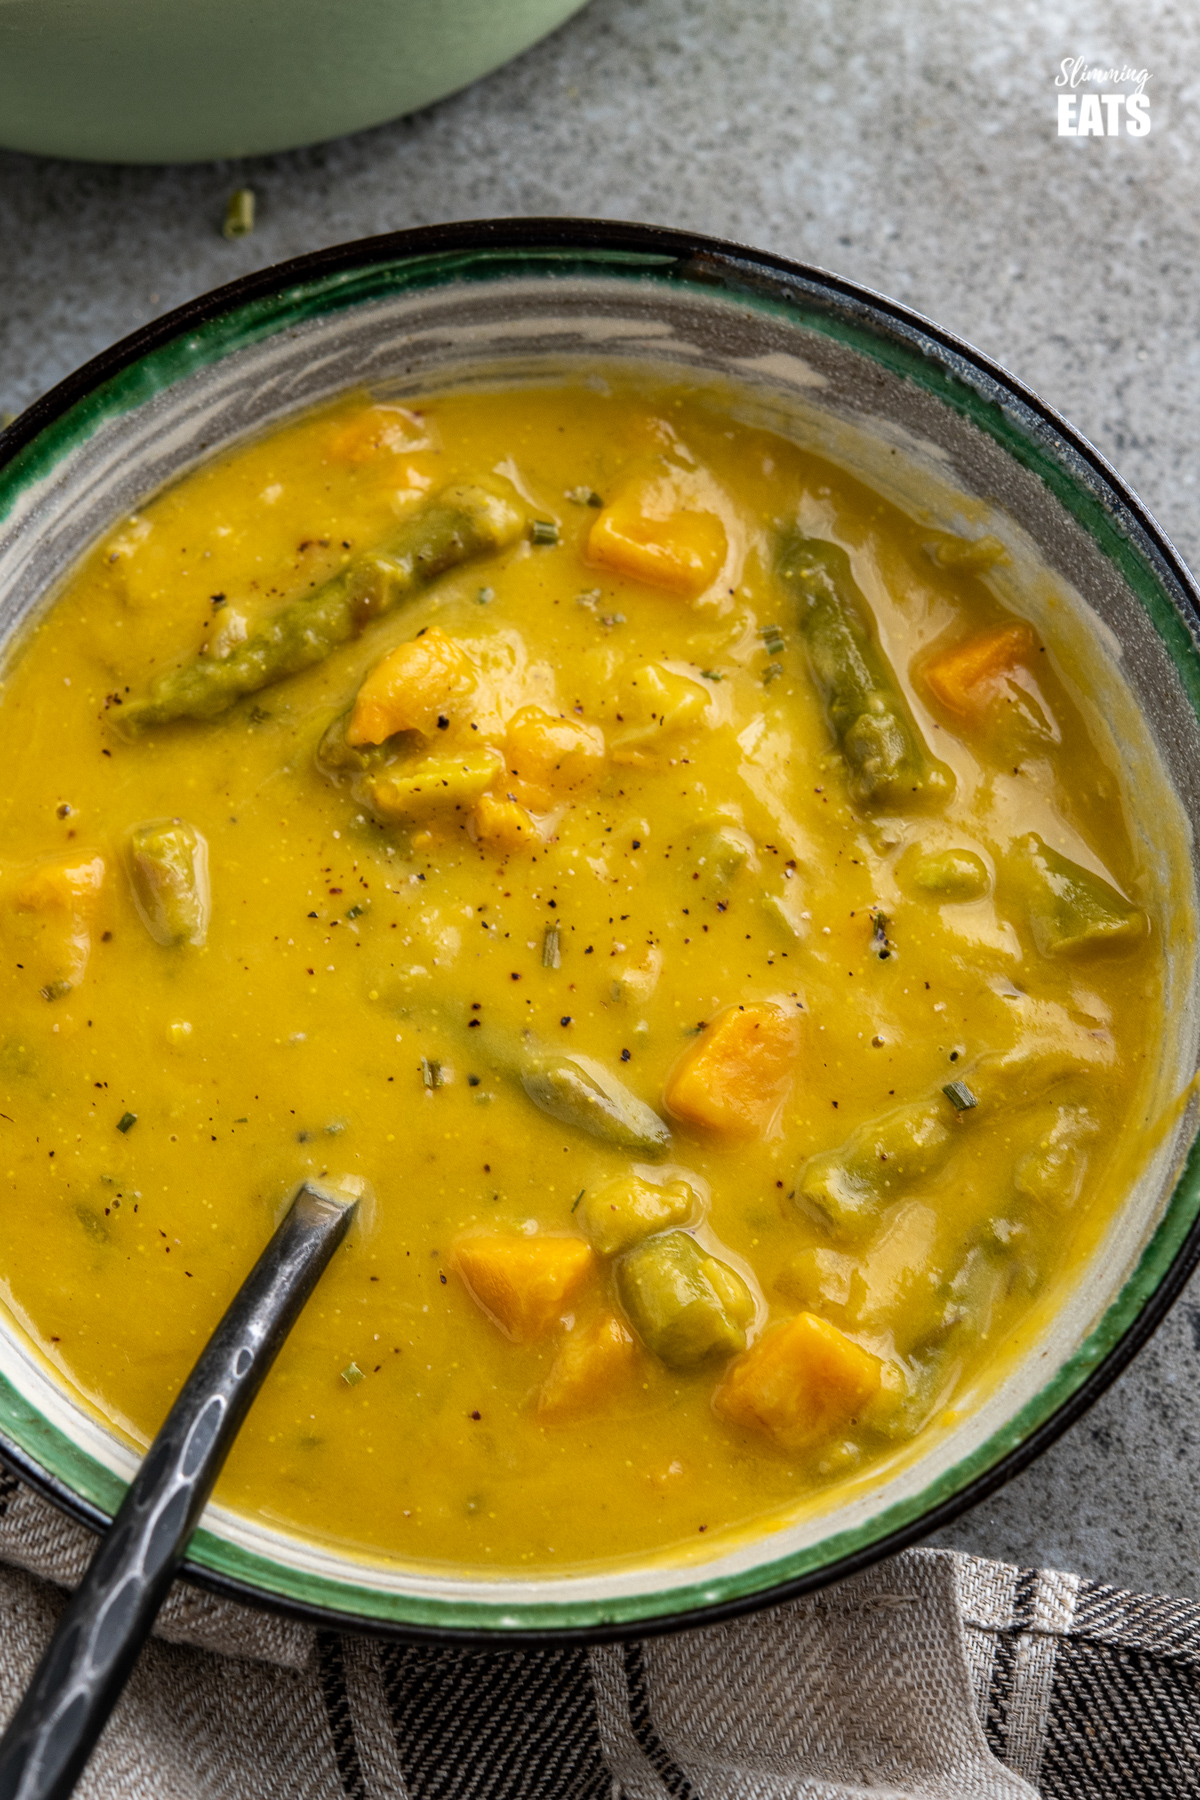 close up asparagus and sweet potato soup in white bowl with green, black and grey stripes, pan of soup in background